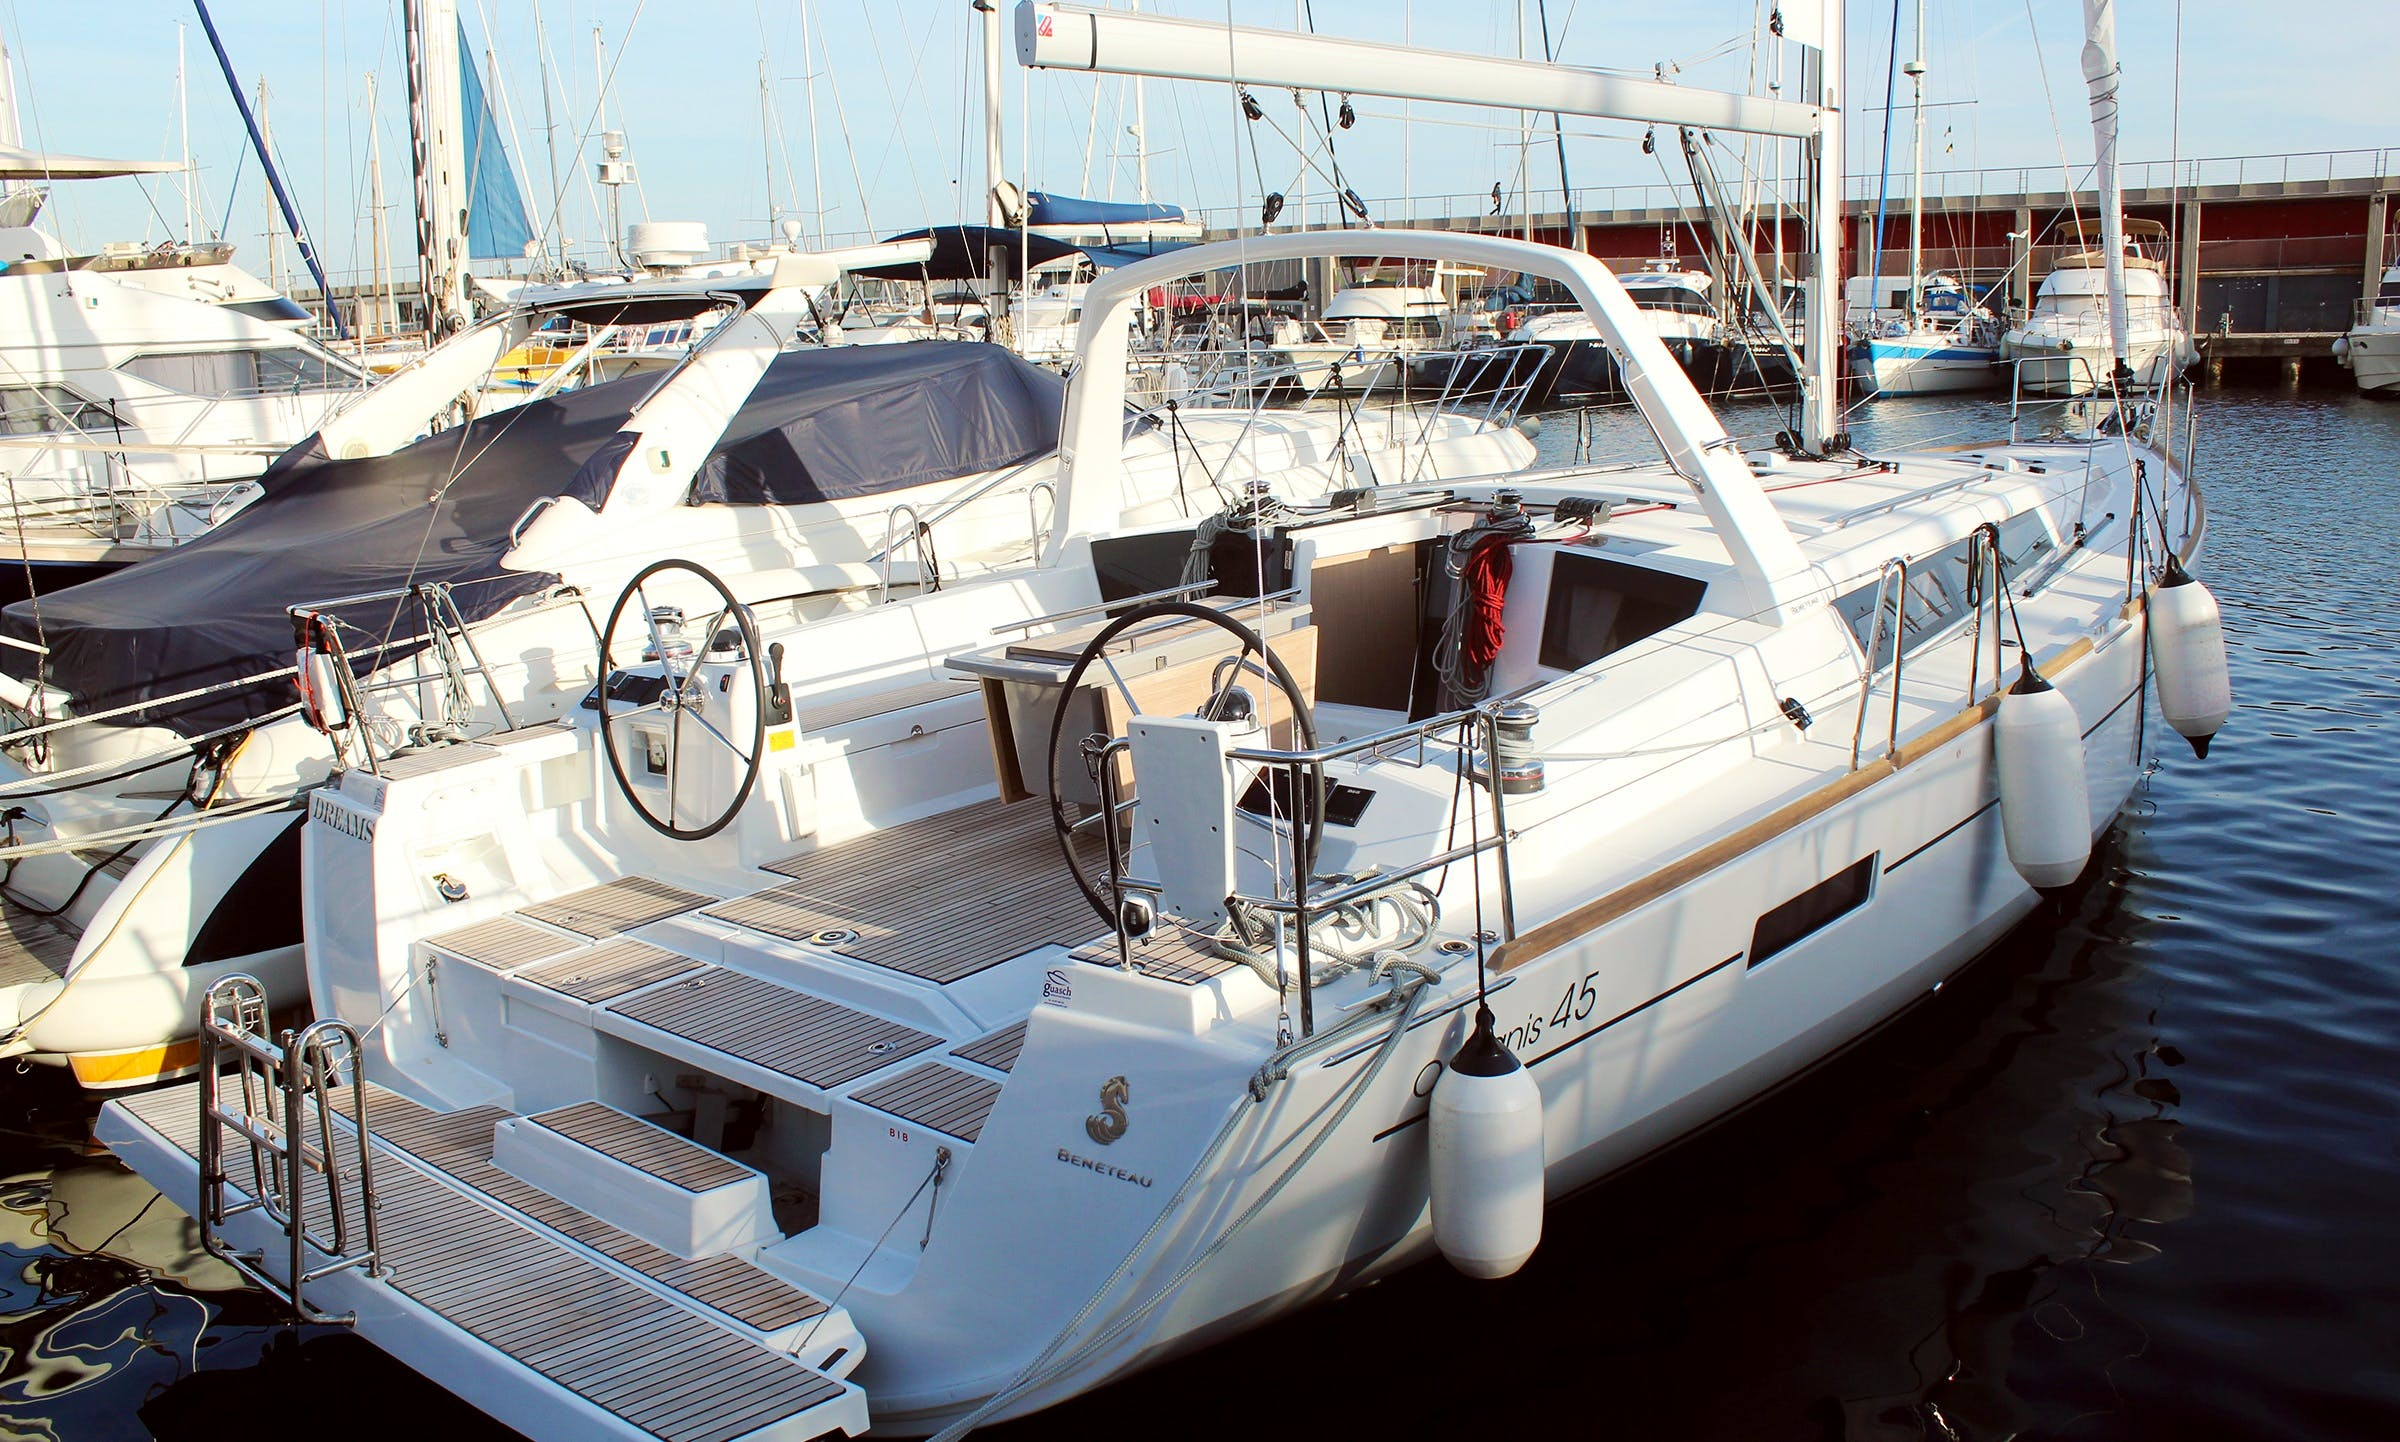 Rent the Oceanis 45 in Barcelona for trips or other experiences